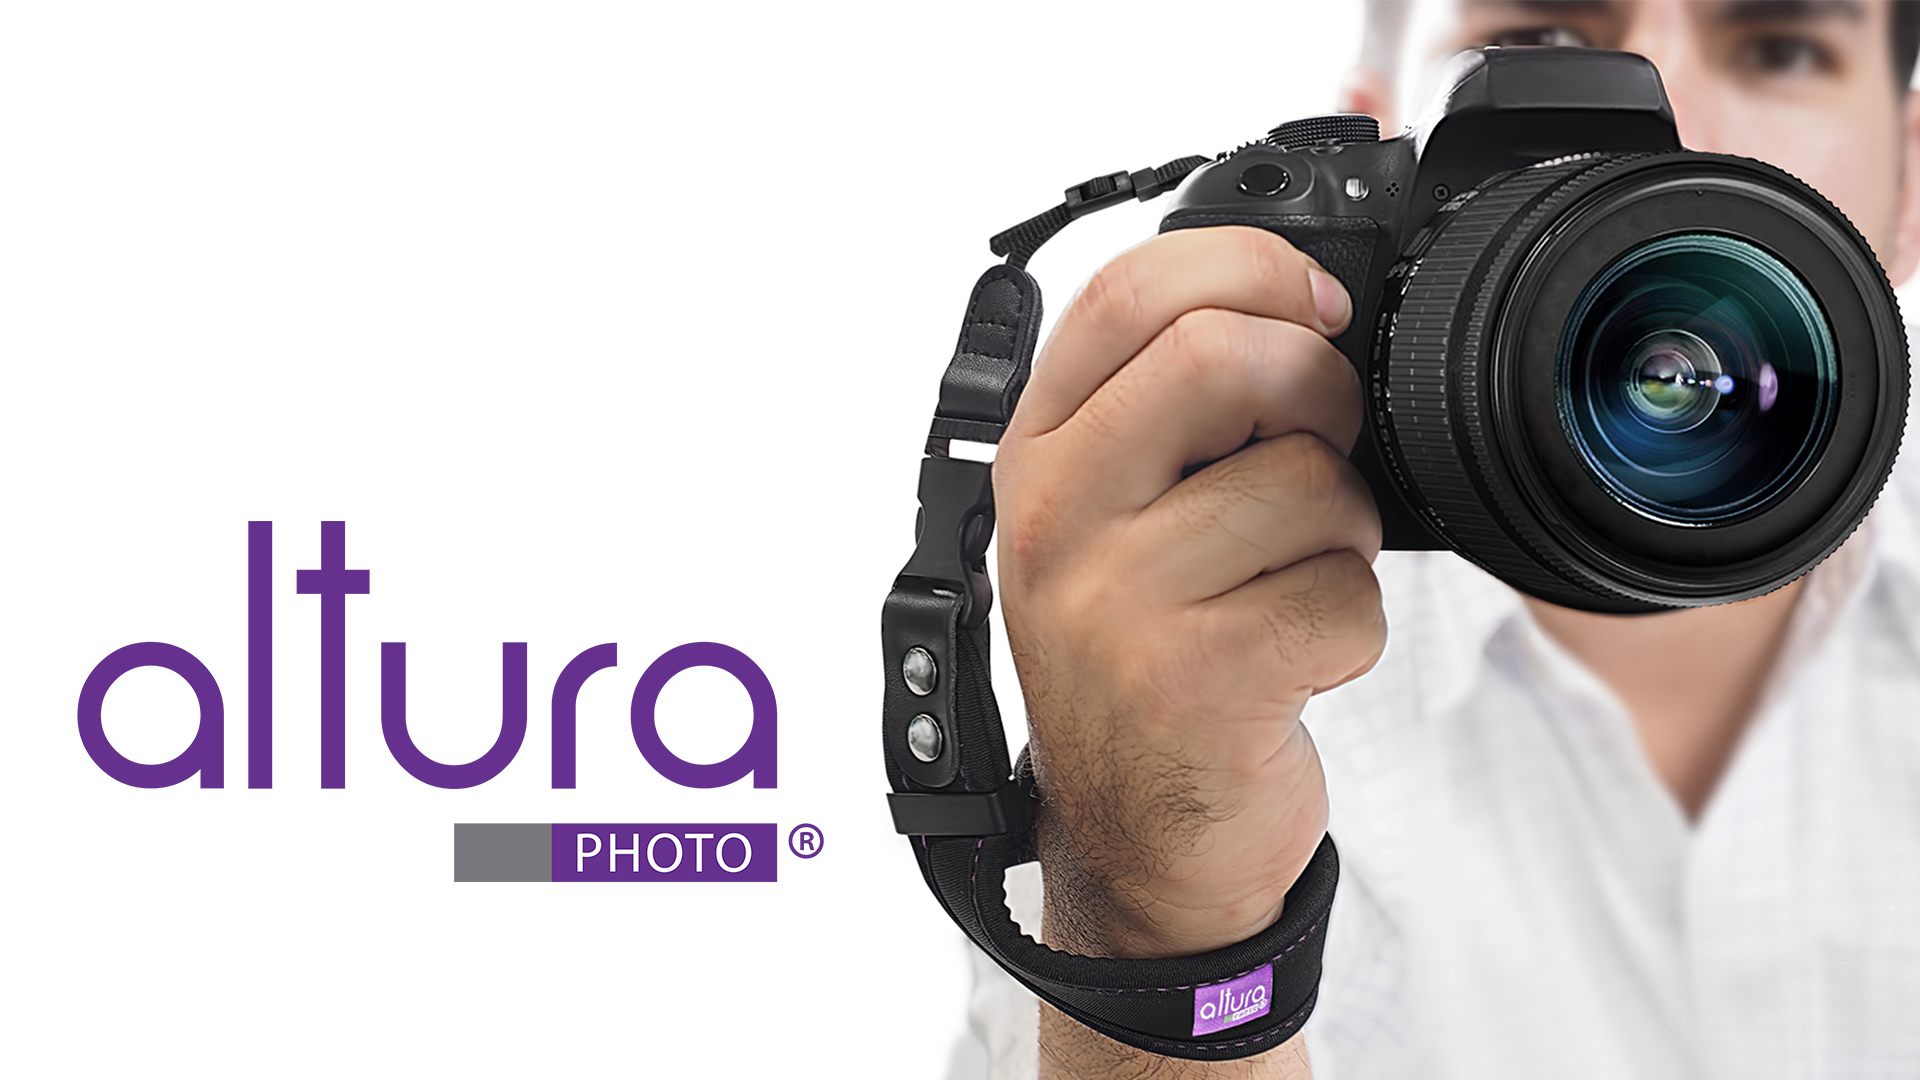 Rapid Fire Secure Grip Padded Wrist Strap Stabilizer by TOAZOE for DSLR and Mirrorless Cameras Camera Hand Strap